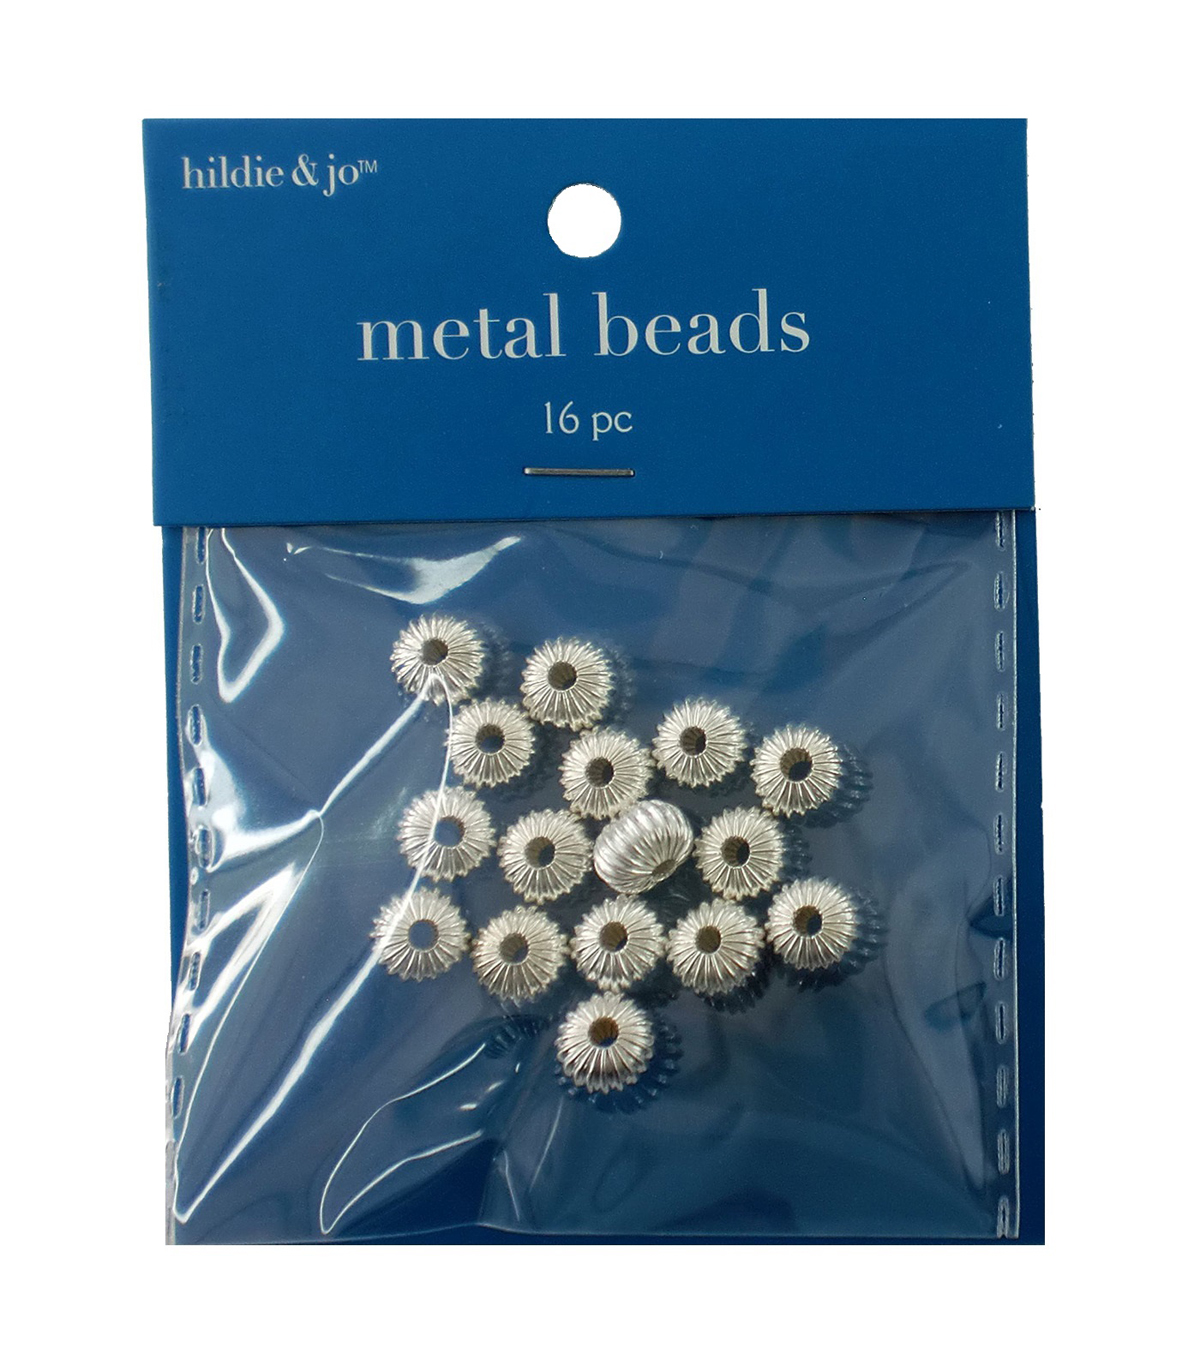 8mm x 5mm Corrugated Silver Bead, 16pcs.